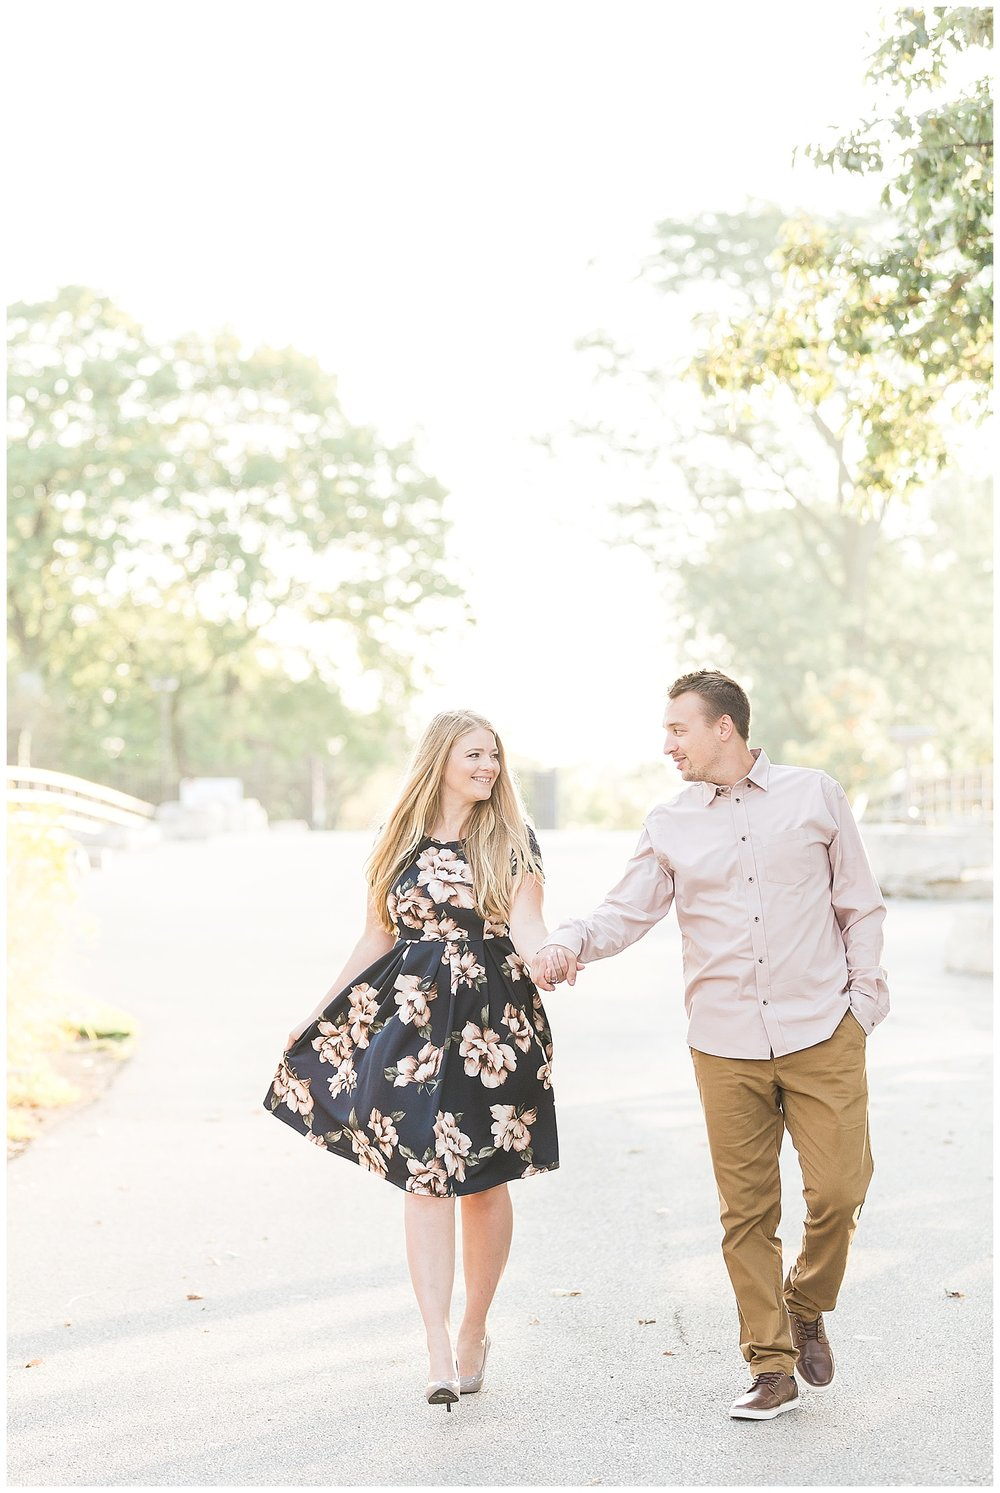 Lincoln-Park-Chicago-Engagement-Photographer-14.jpg